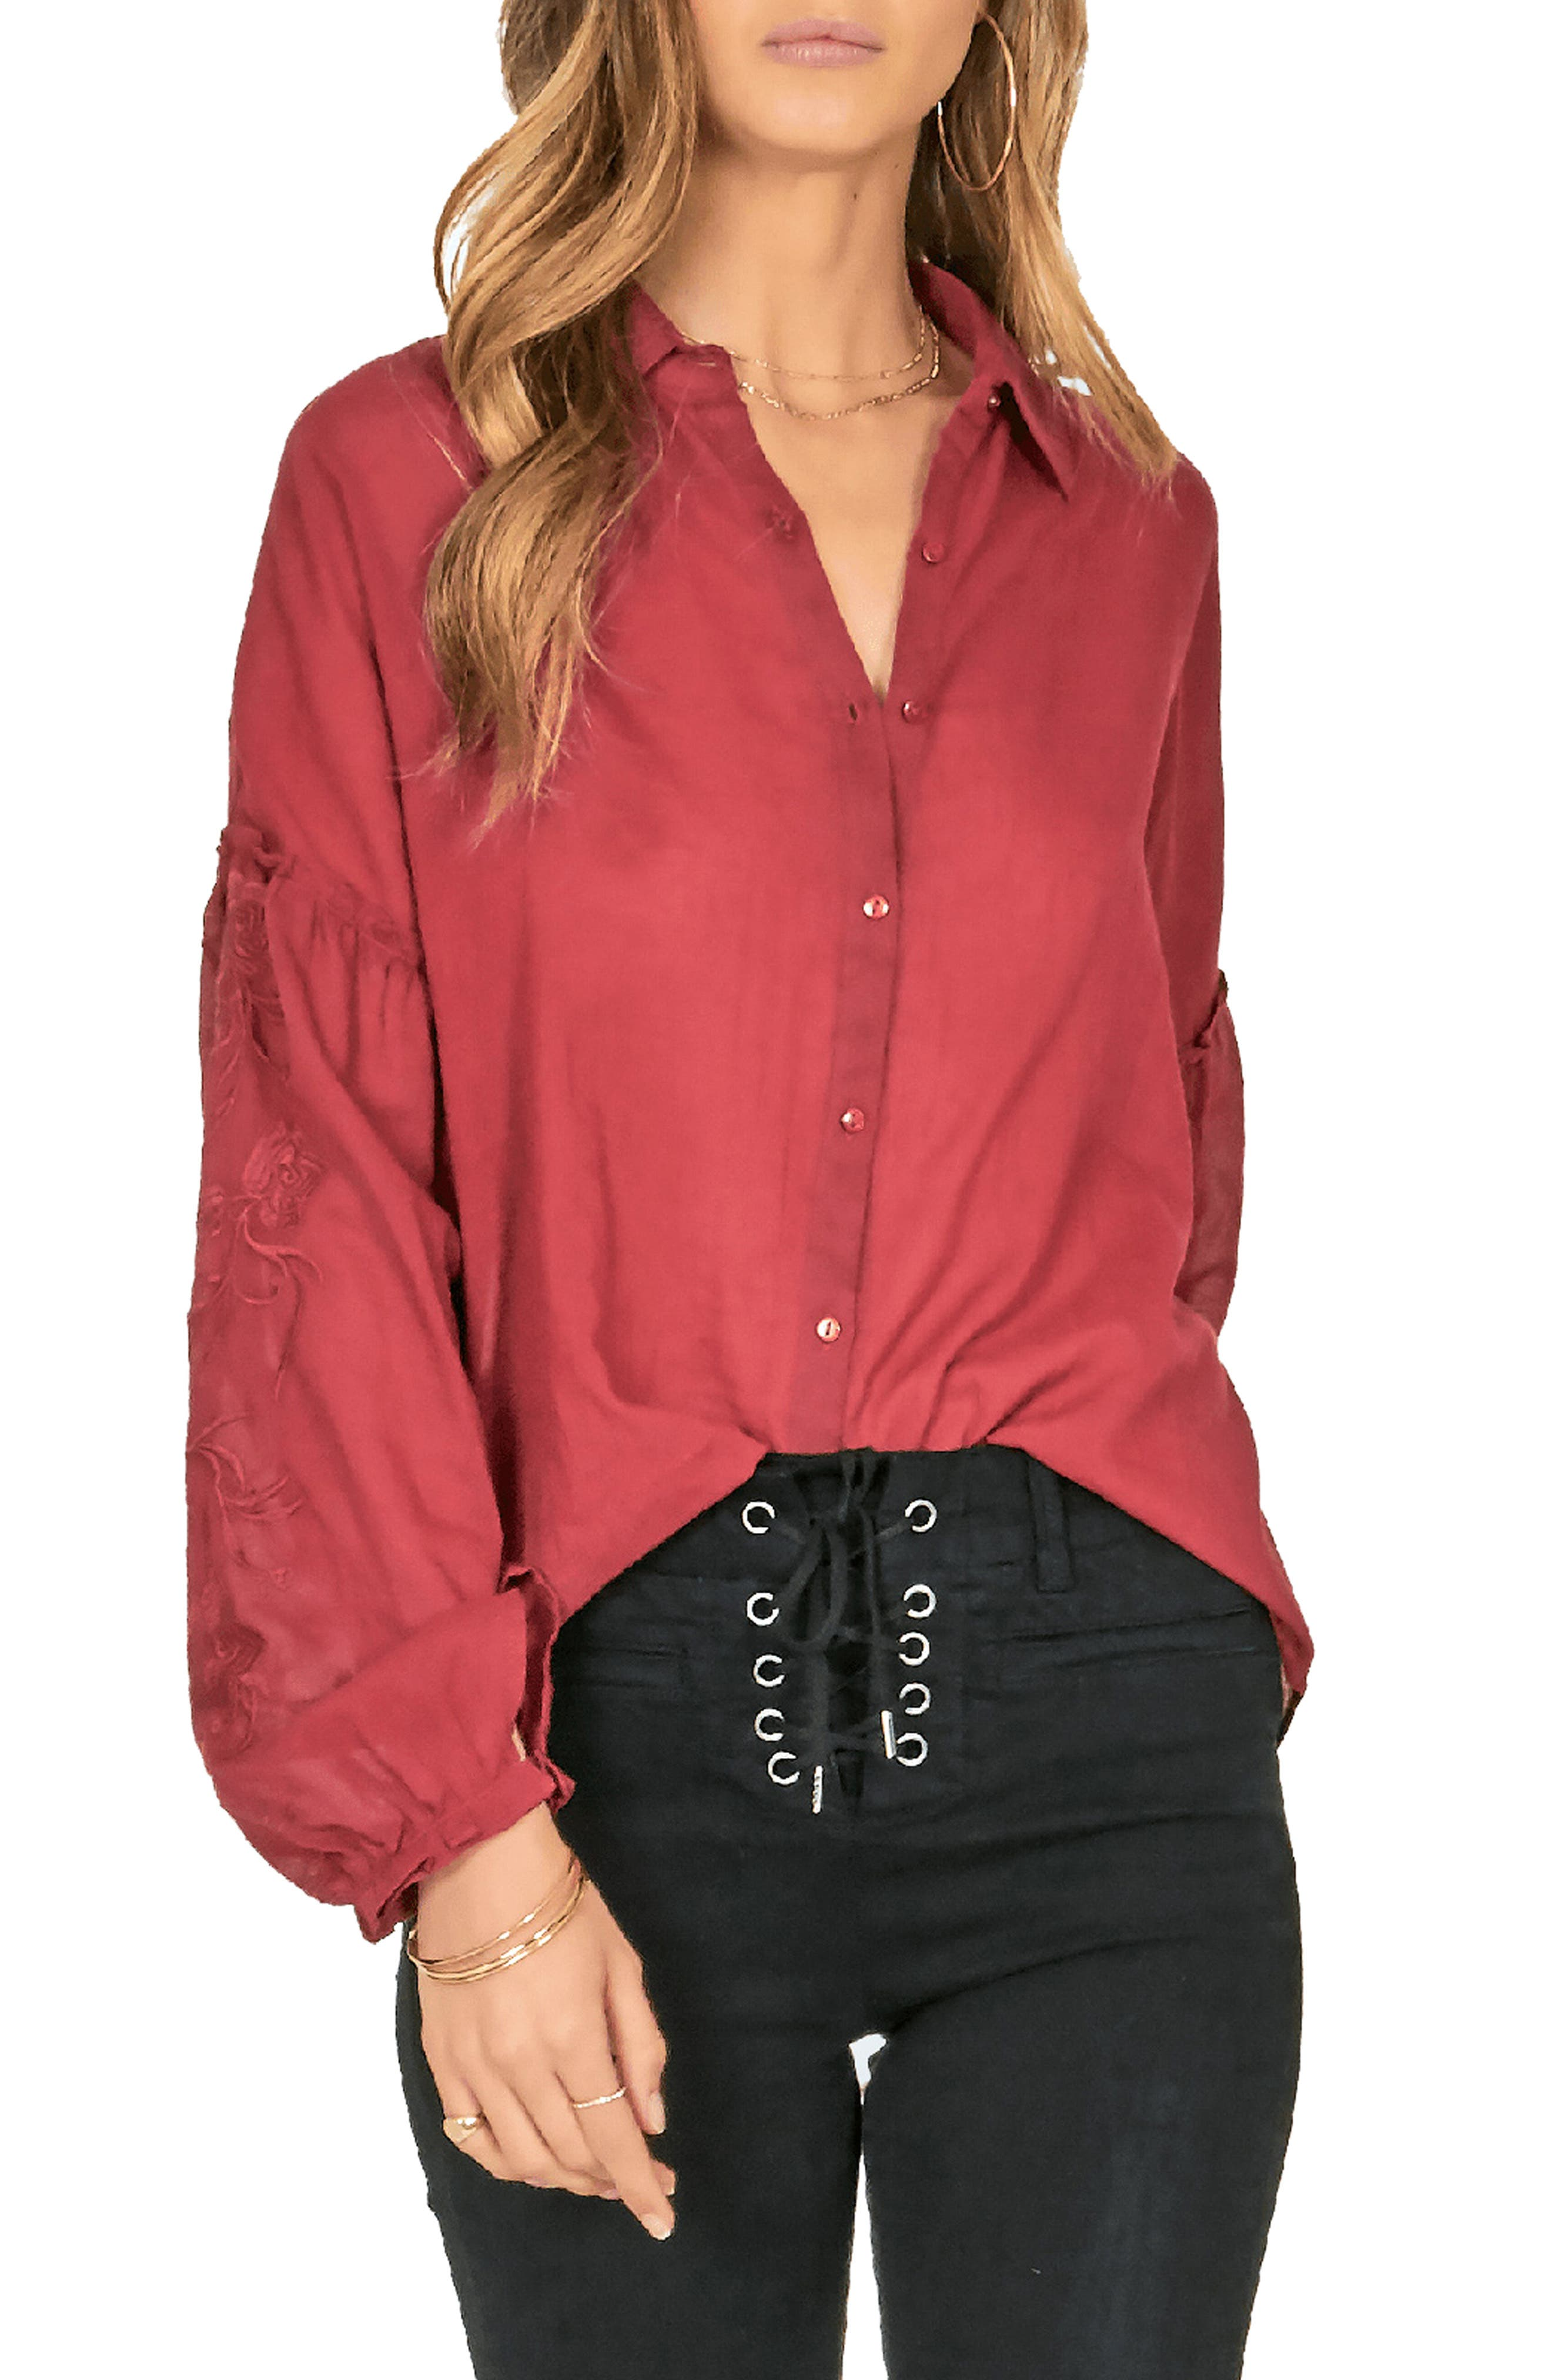 AMUSE SOCIETY Everyday Love Embroidered Blouse in Crimson